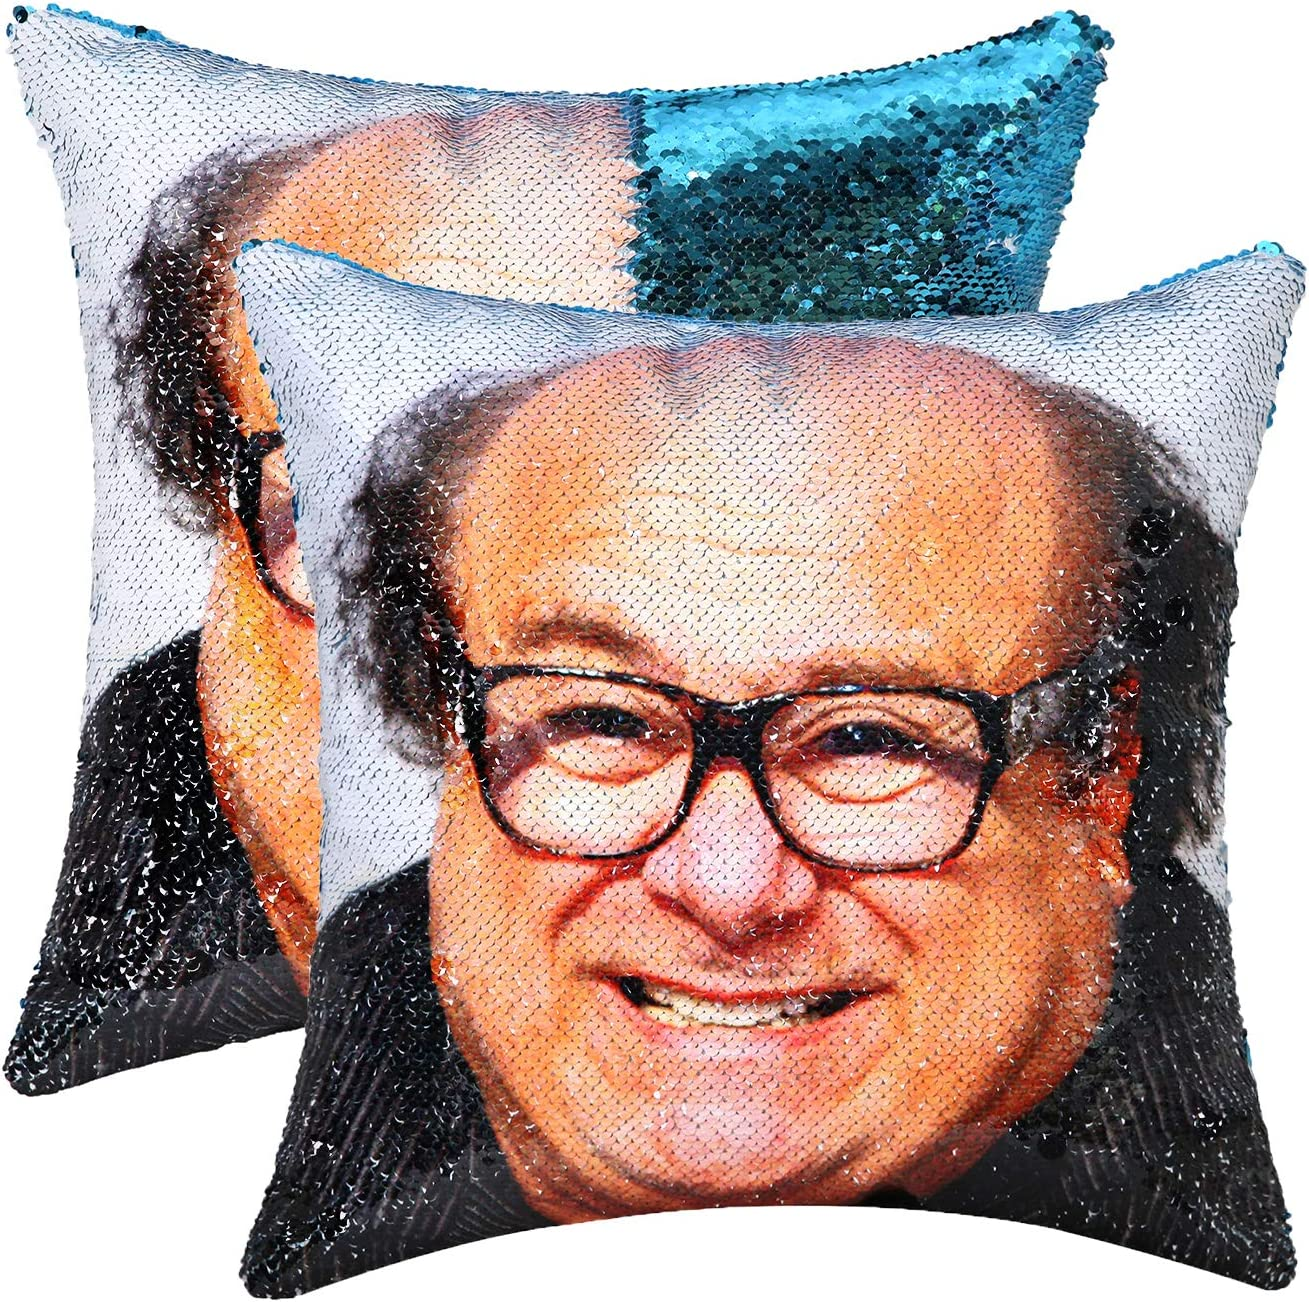 cygnus Sequin Mermaid Pillow Cover It's Always Sunny in Philadelphia Danny Devito Face Funny Reversible Magic Throw Pillow Case That Color Changes 16x16 (Blue)